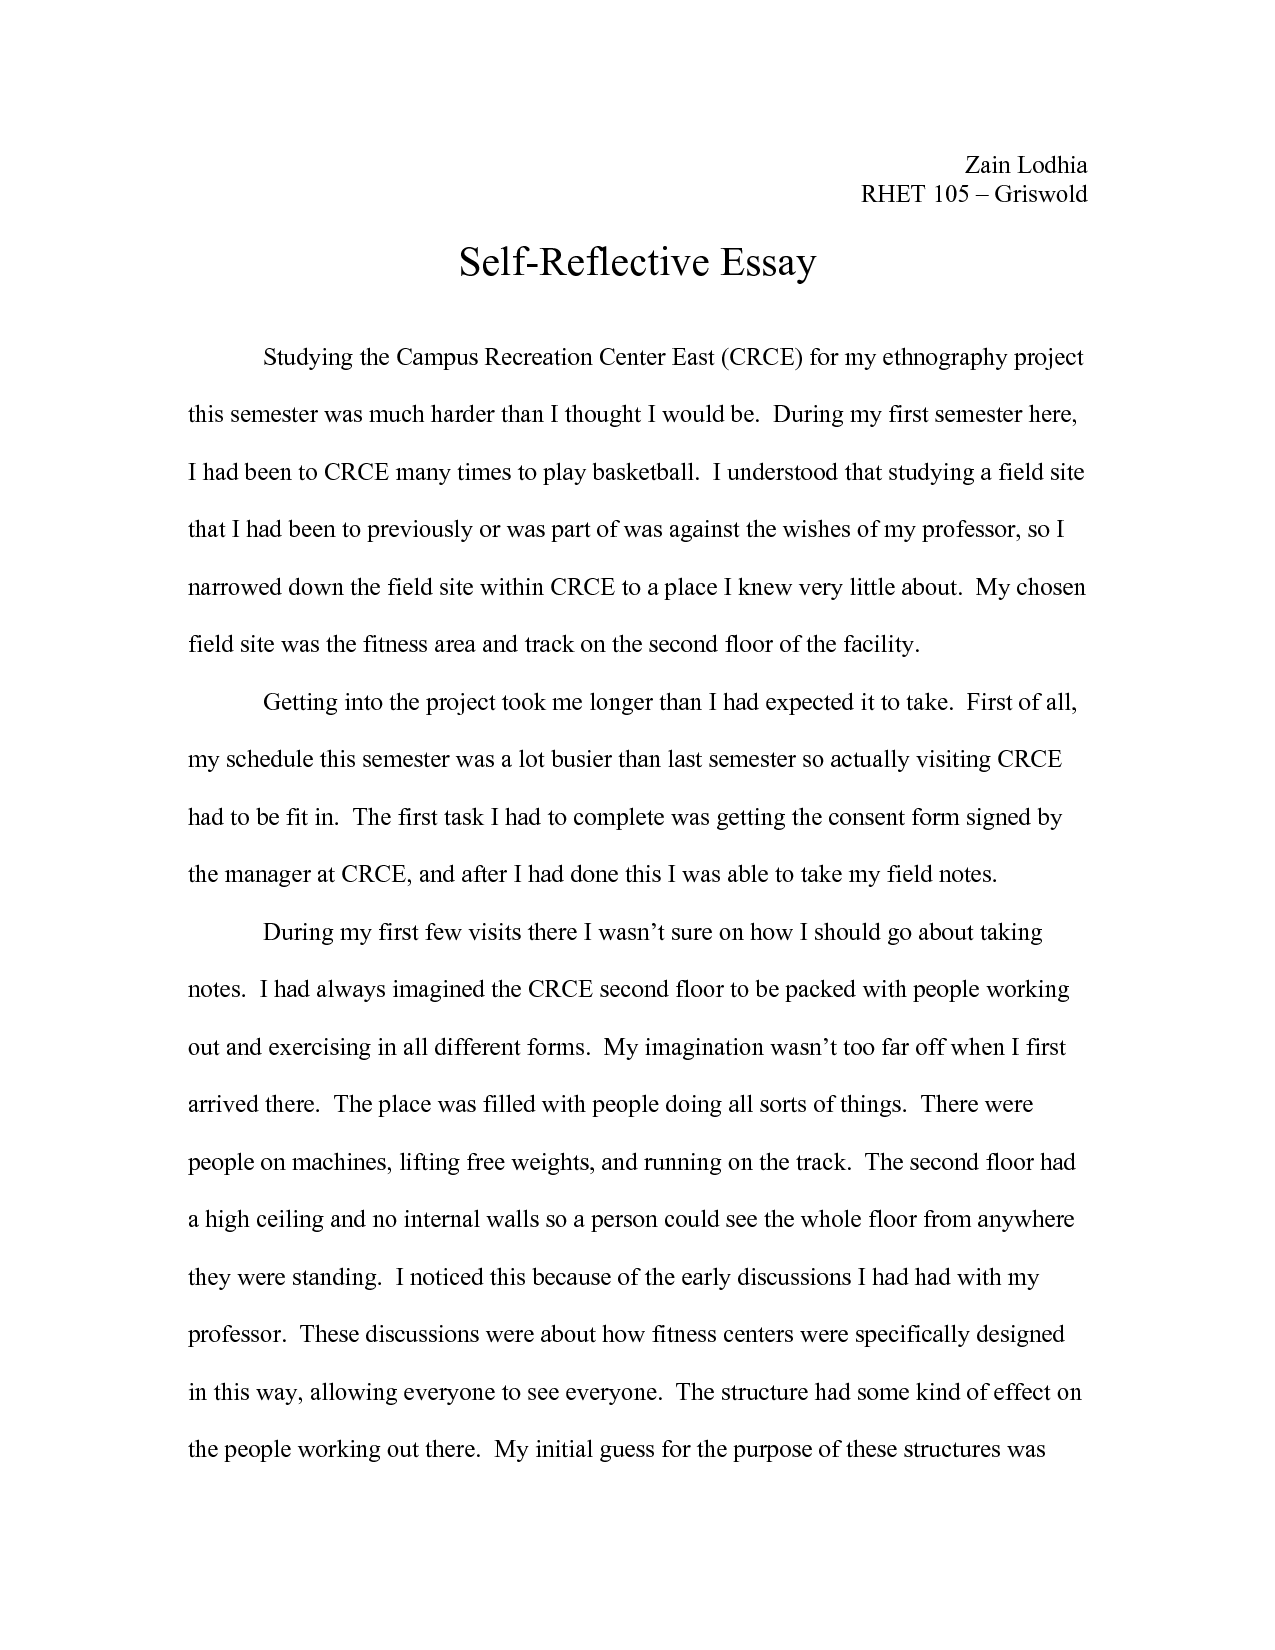 018 Essay Example Qal0pwnf46 How To Start An Unusual Conclusion A History Sentence For Write Expository Full